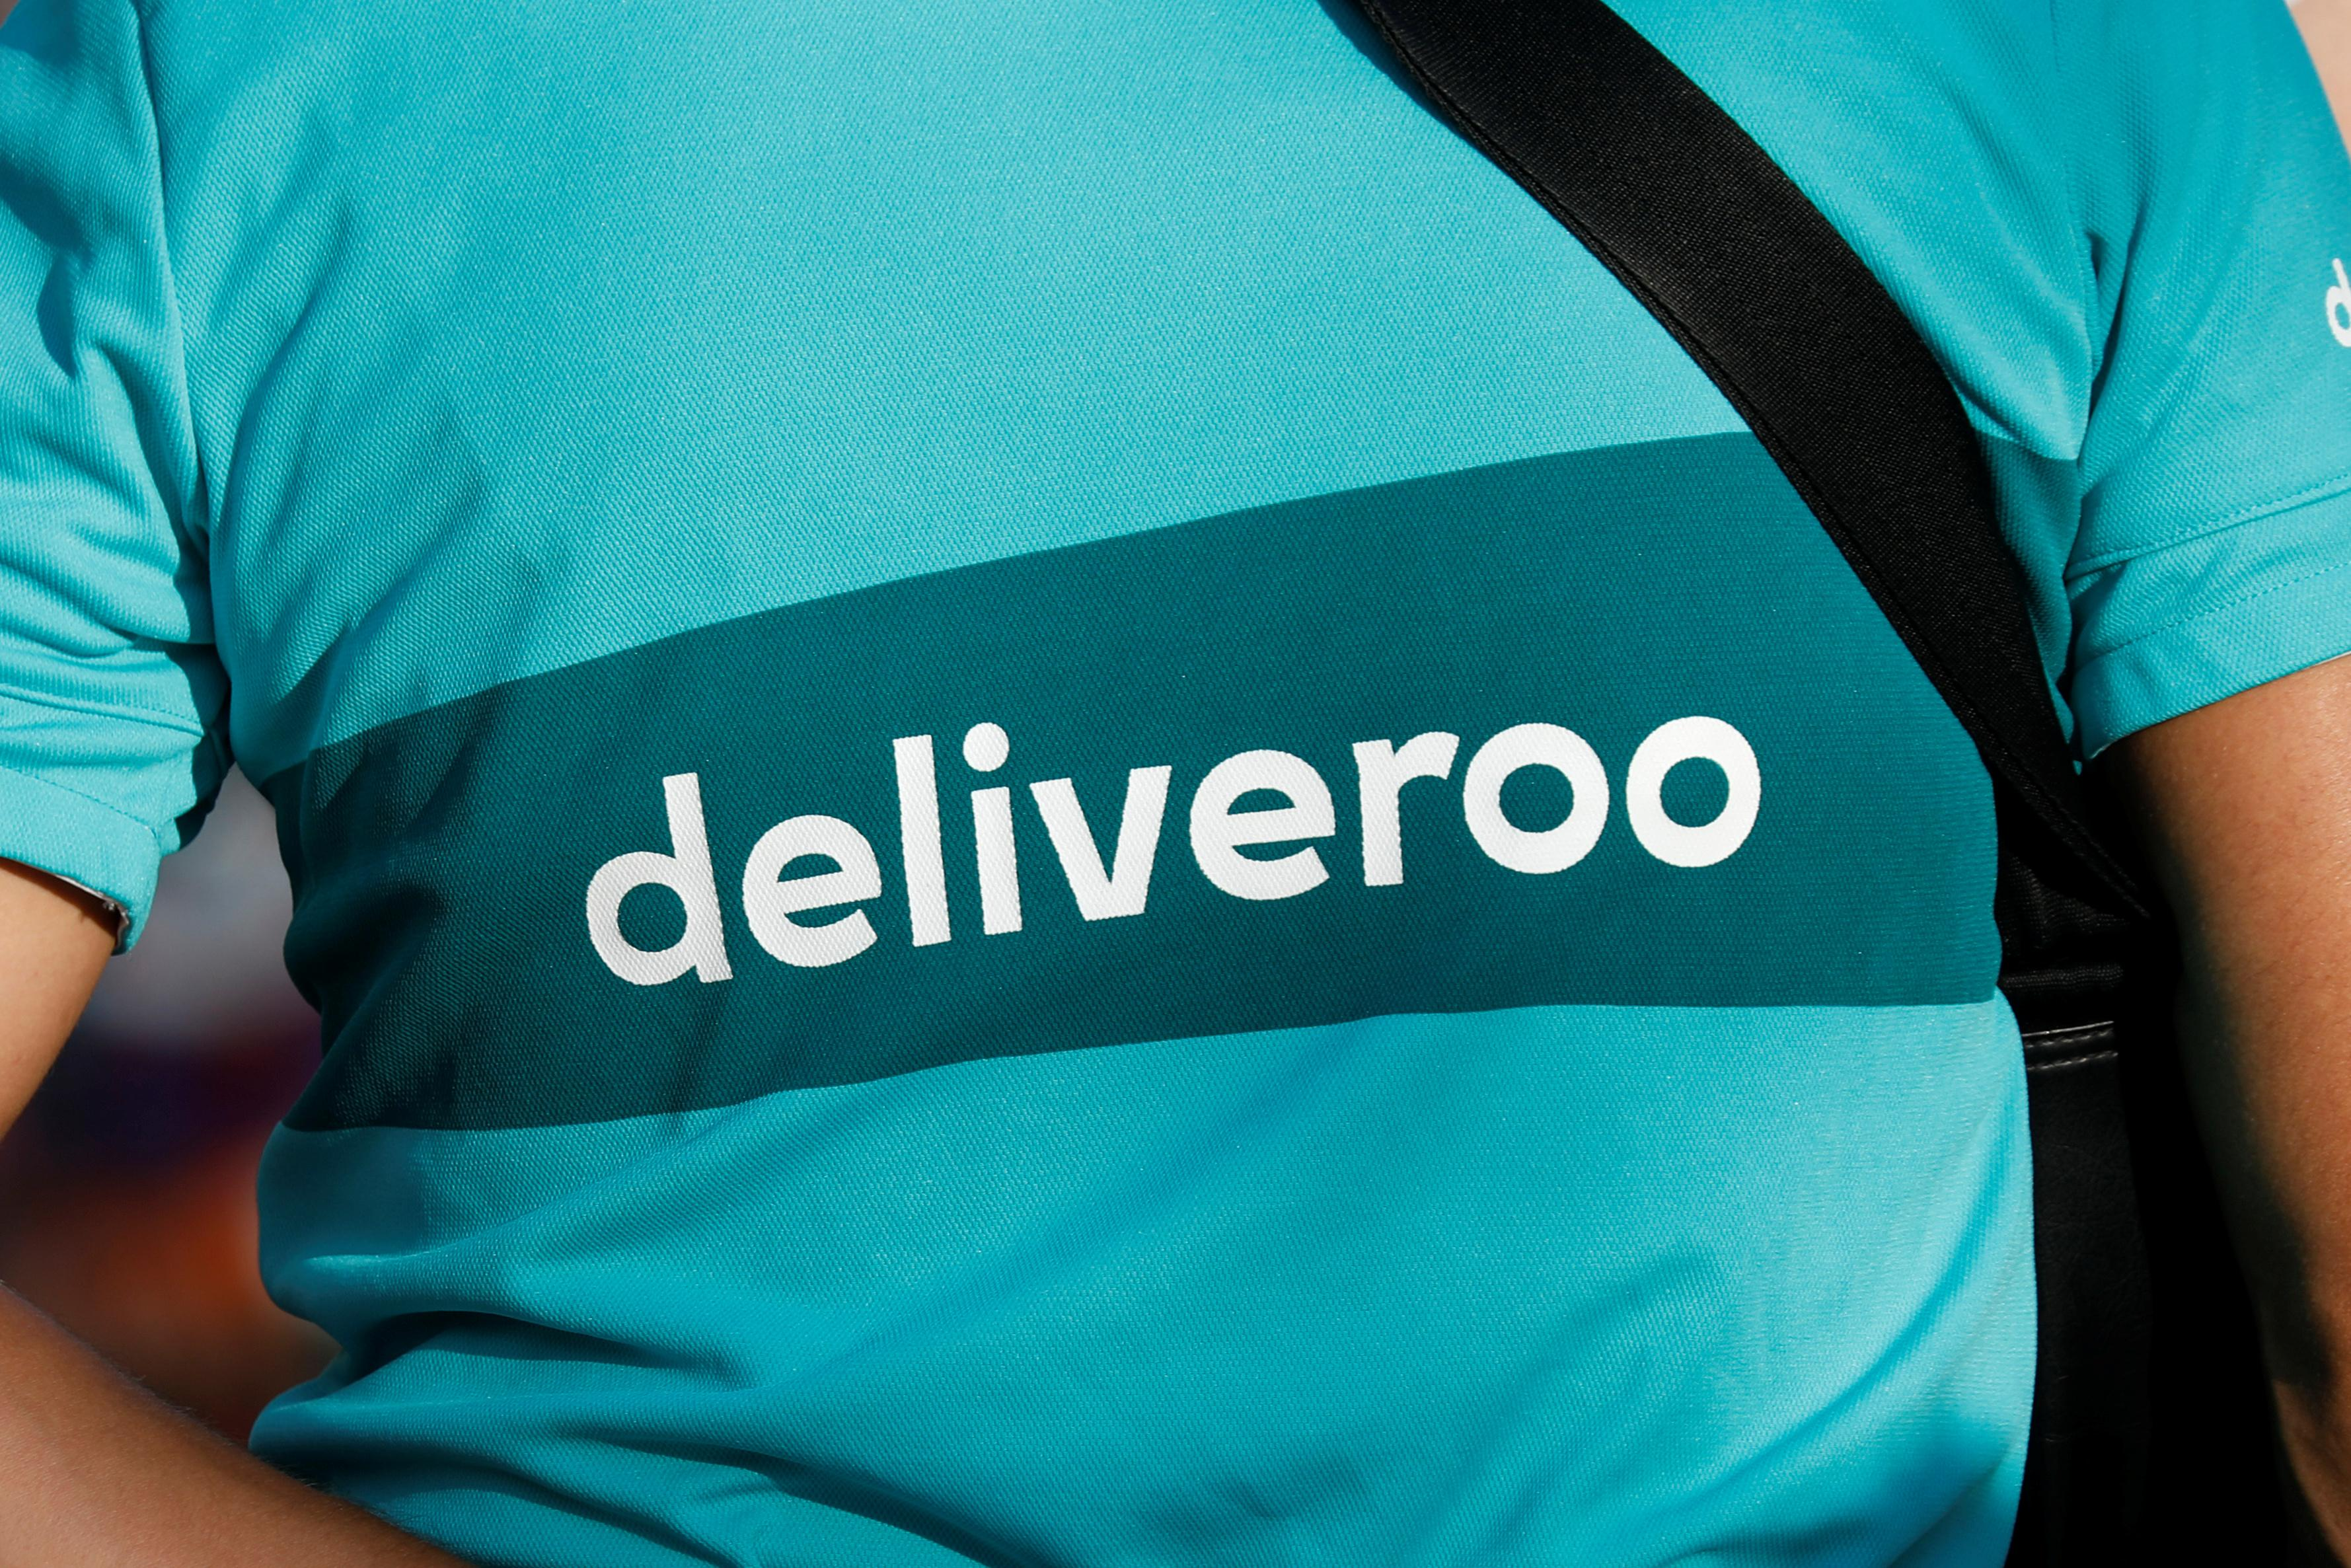 Amazon's Deliveroo deal put in jeopardy by UK regulator's 'serious...